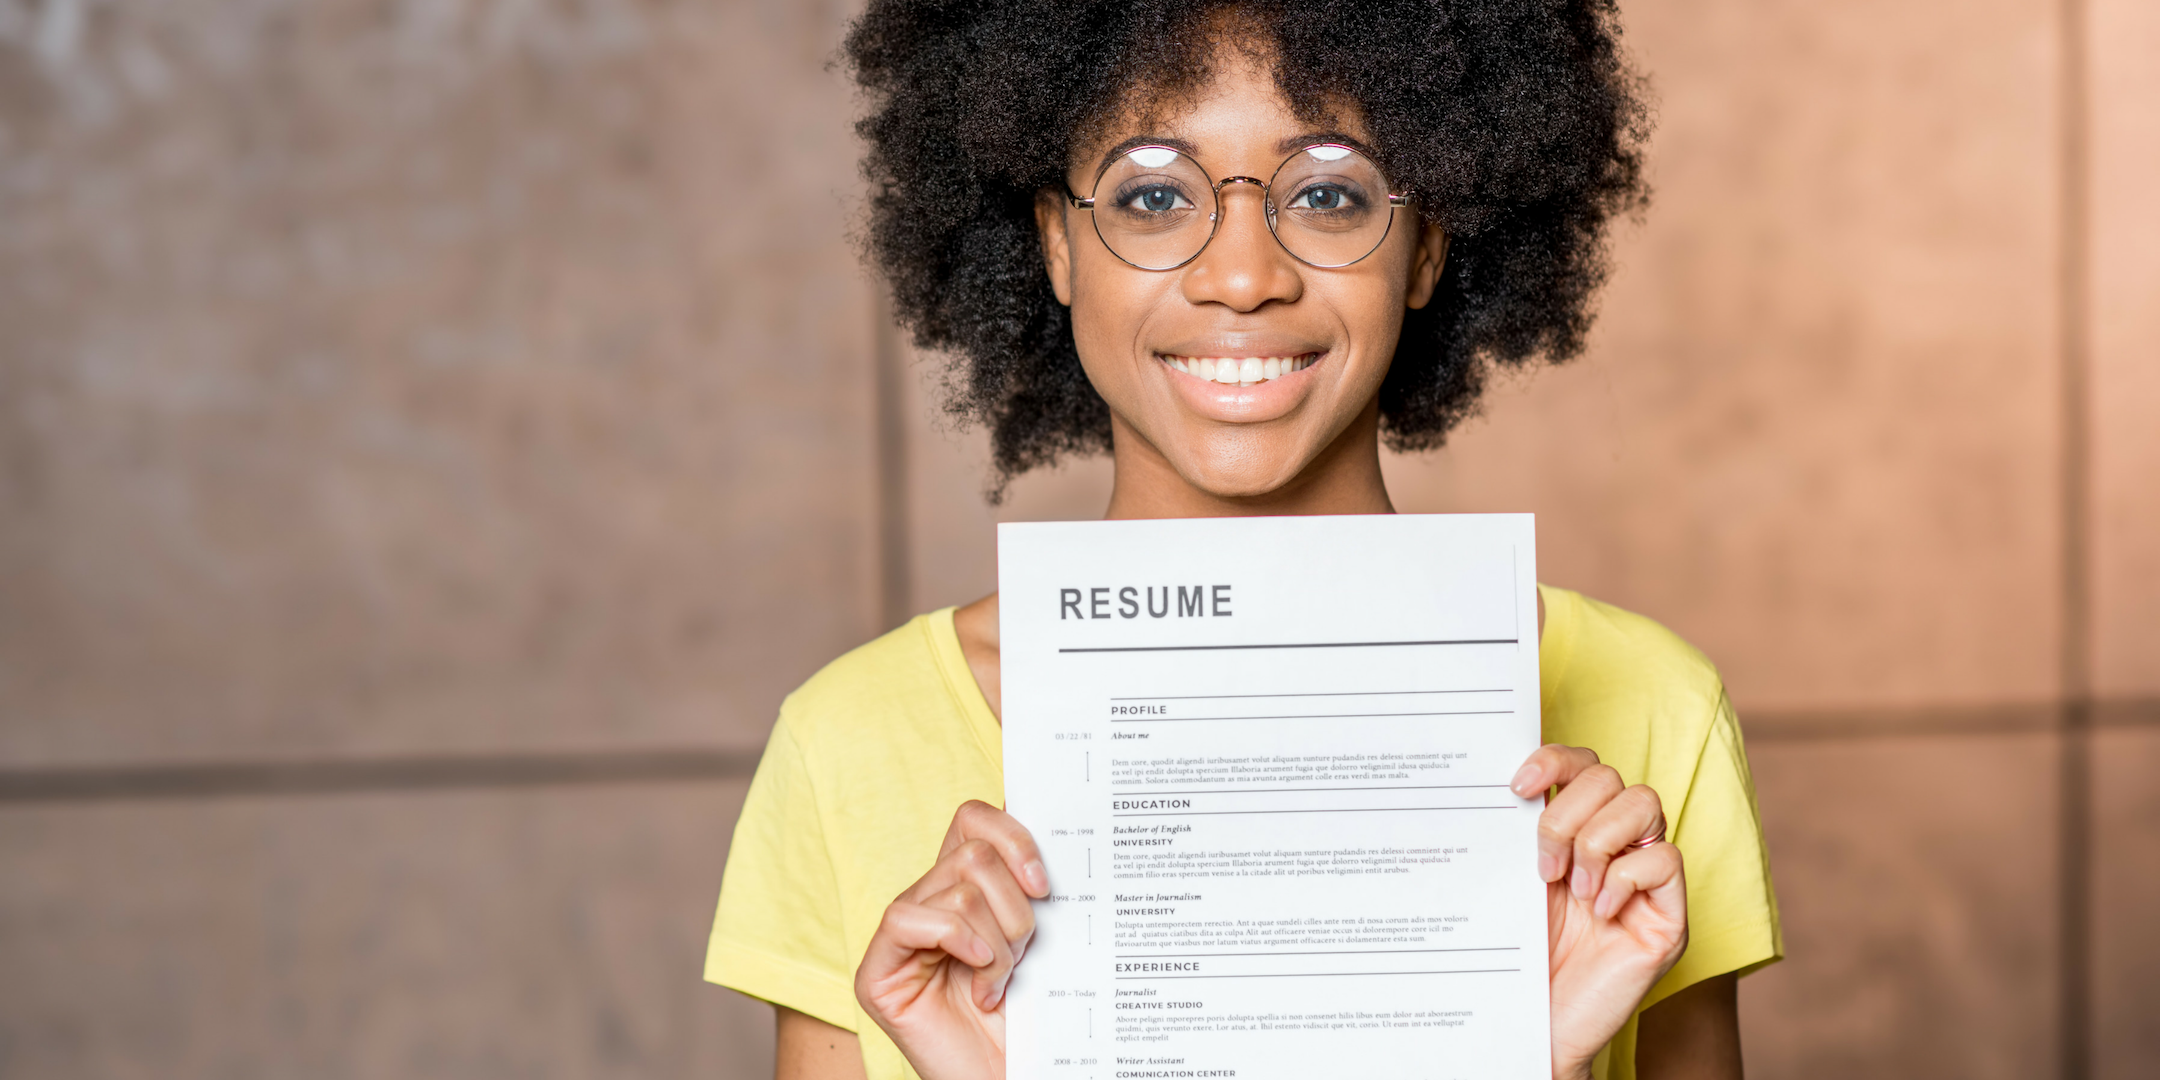 Refresh Your Resume: Land That Dream Job!